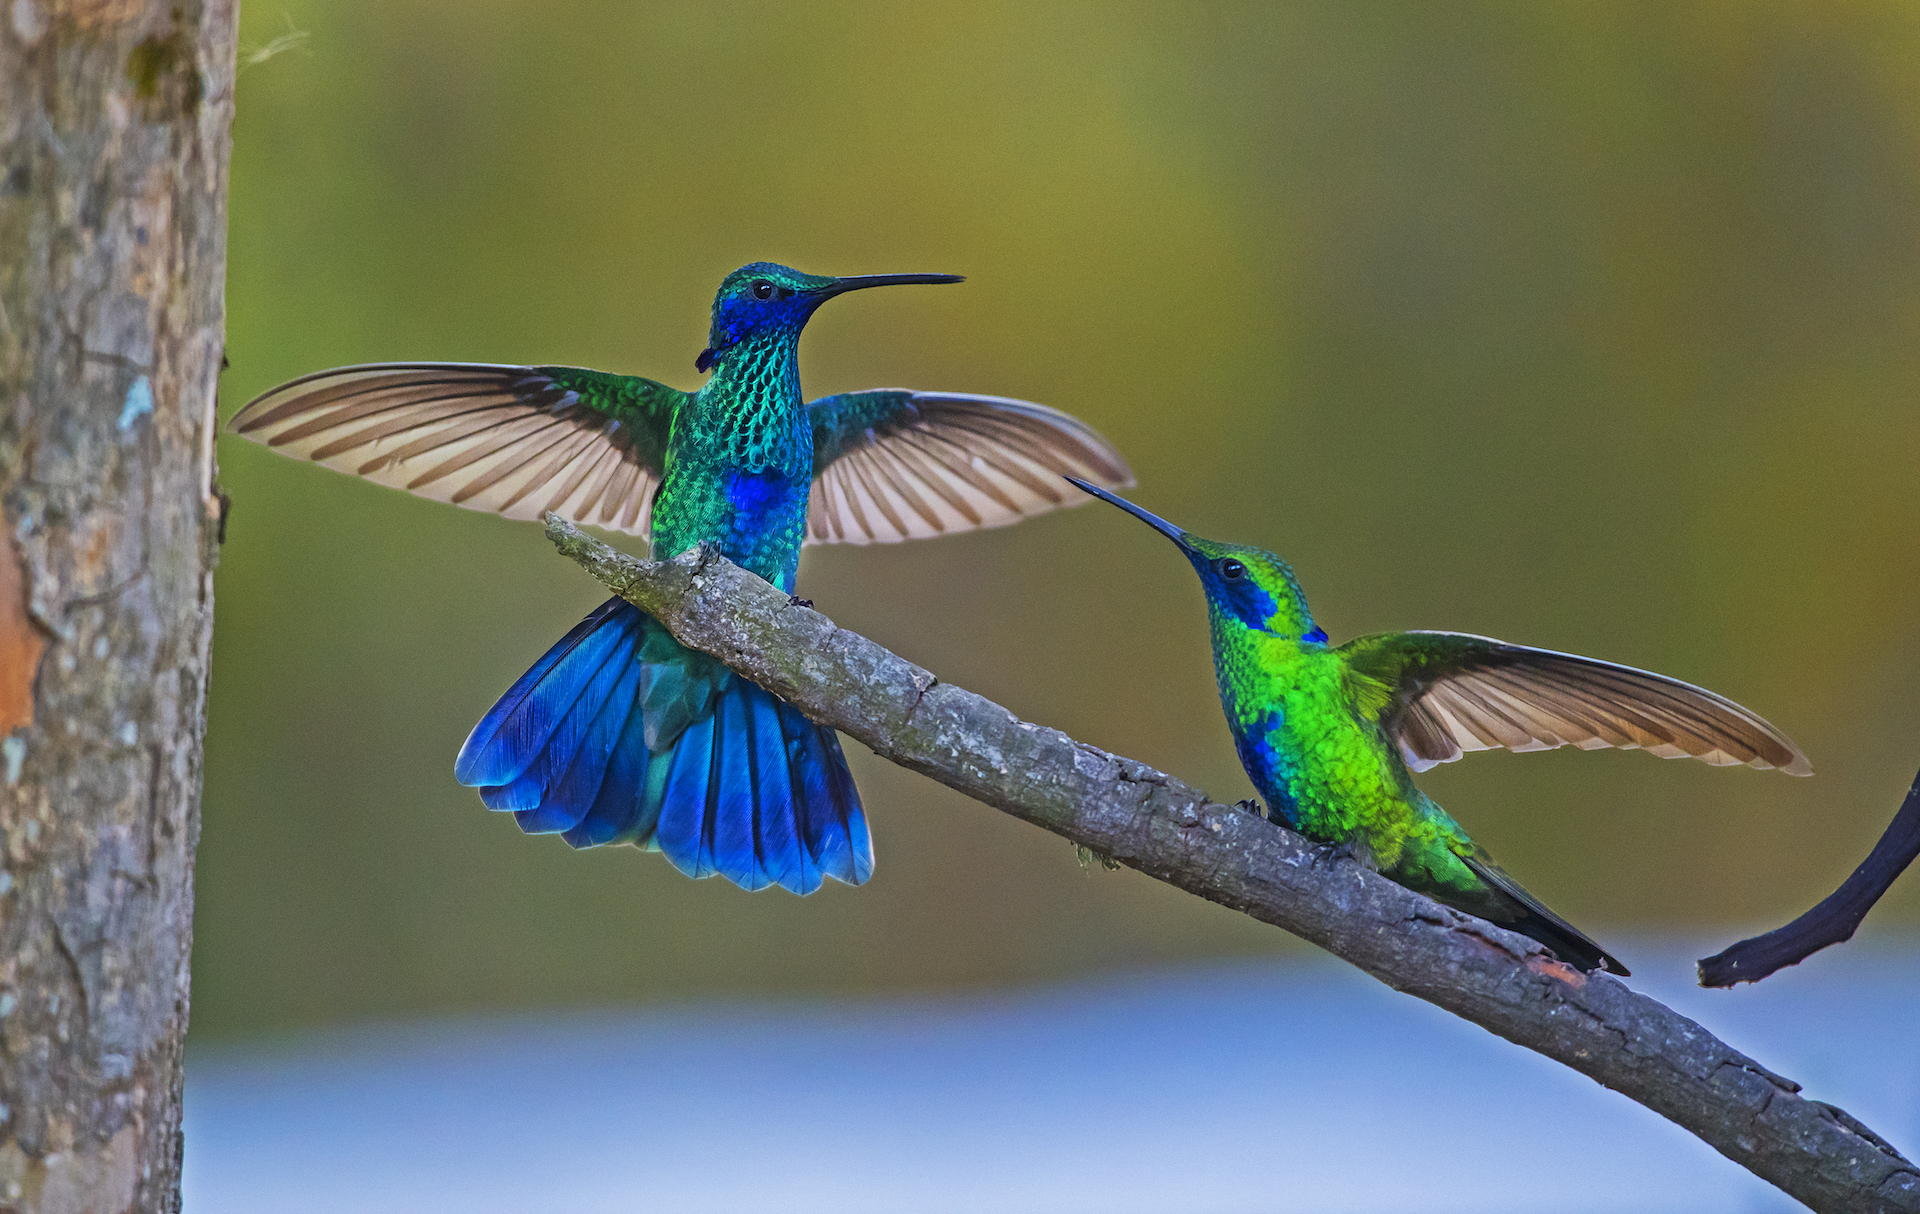 Most hummingbird species, including these green violetears, are solitary creatures that spend most of their lives alone, except for breeding. During courtship, males impress females with flamboyant flight patterns, increased wing speed. The males only involvement is during copulation. Males disperse once the act is over, and it is the female that build the nest and looks after her eggs and young ones